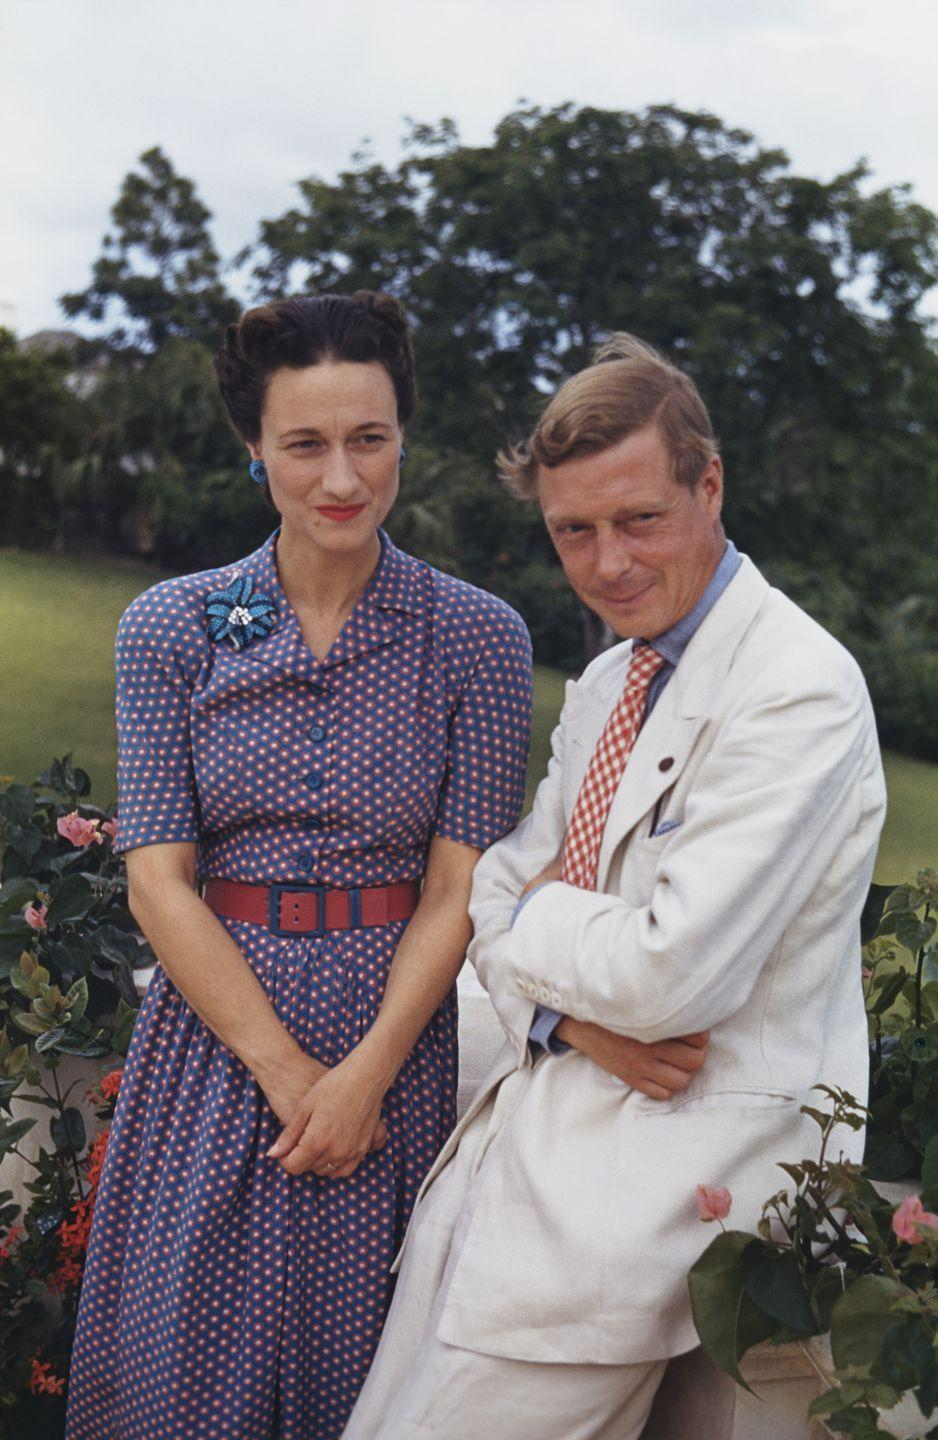 """<p>Among other things, the Duchess of Windsor was a master at making <a href=""""https://www.townandcountrymag.com/style/jewelry-and-watches/a36611738/animal-jewelry-exhibit-natural-history-museum-nyc/"""" rel=""""nofollow noopener"""" target=""""_blank"""" data-ylk=""""slk:bold statements through jewelry"""" class=""""link rapid-noclick-resp"""">bold statements through jewelry</a>. She favored <a href=""""https://www.townandcountrymag.com/style/jewelry-and-watches/a36421765/brooches-jewelry-trend-2021/"""" rel=""""nofollow noopener"""" target=""""_blank"""" data-ylk=""""slk:big, eye-catching brooches"""" class=""""link rapid-noclick-resp"""">big, eye-catching brooches</a>, especially, perhaps as a symbol of rebellion against the royal family and its more traditional tastes. Case in point: this turquoise, sapphire, and diamond brooch, which she wore with matching earrings while in the Bahamas with the Duke of Windsor in 1942. </p>"""